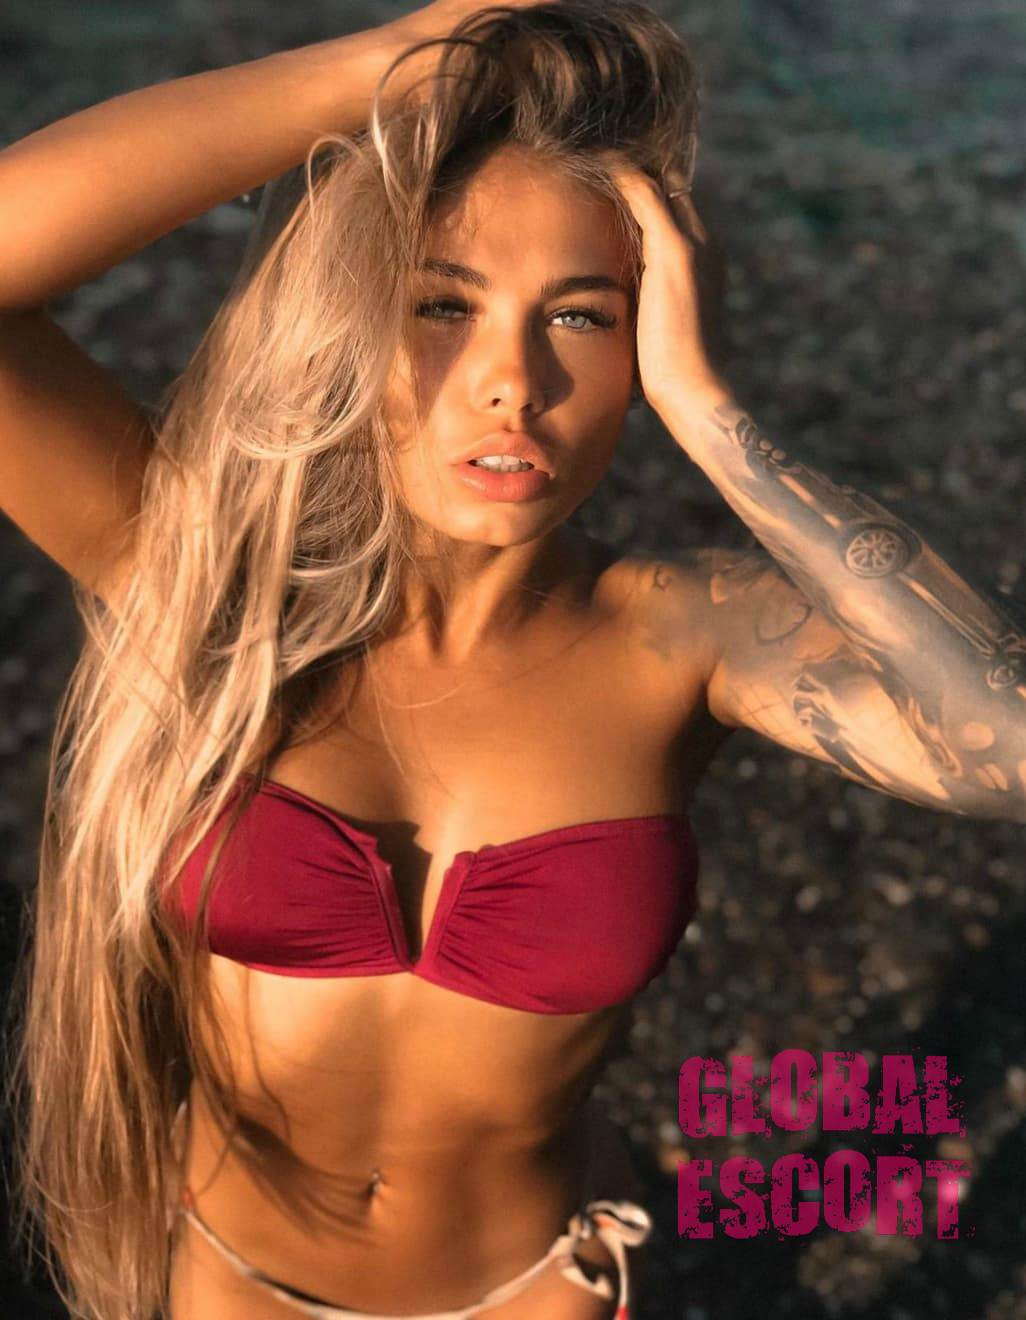 sexy escort model Valeria in a red swimsuit and a tattoo on her arm